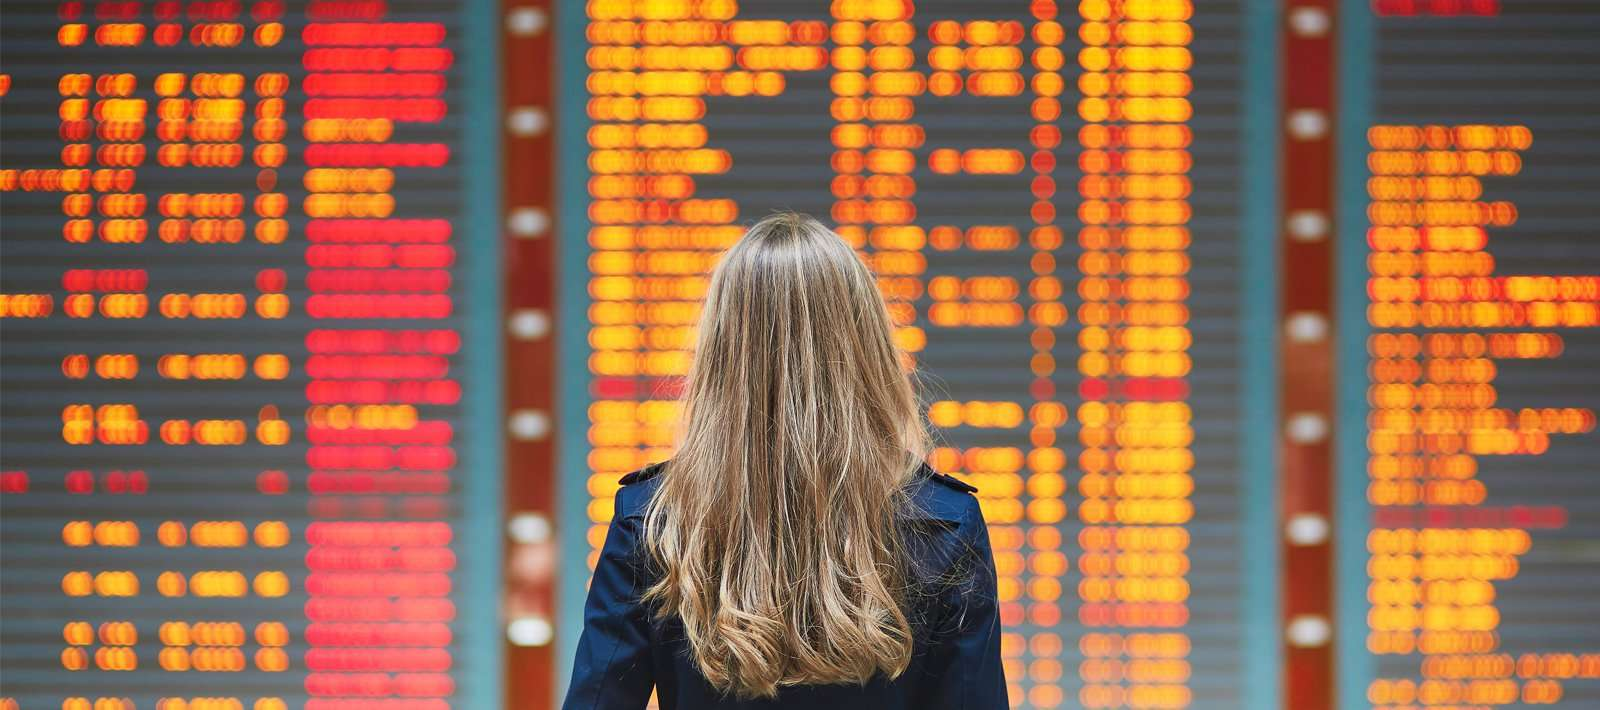 woman looks at boarding infromation